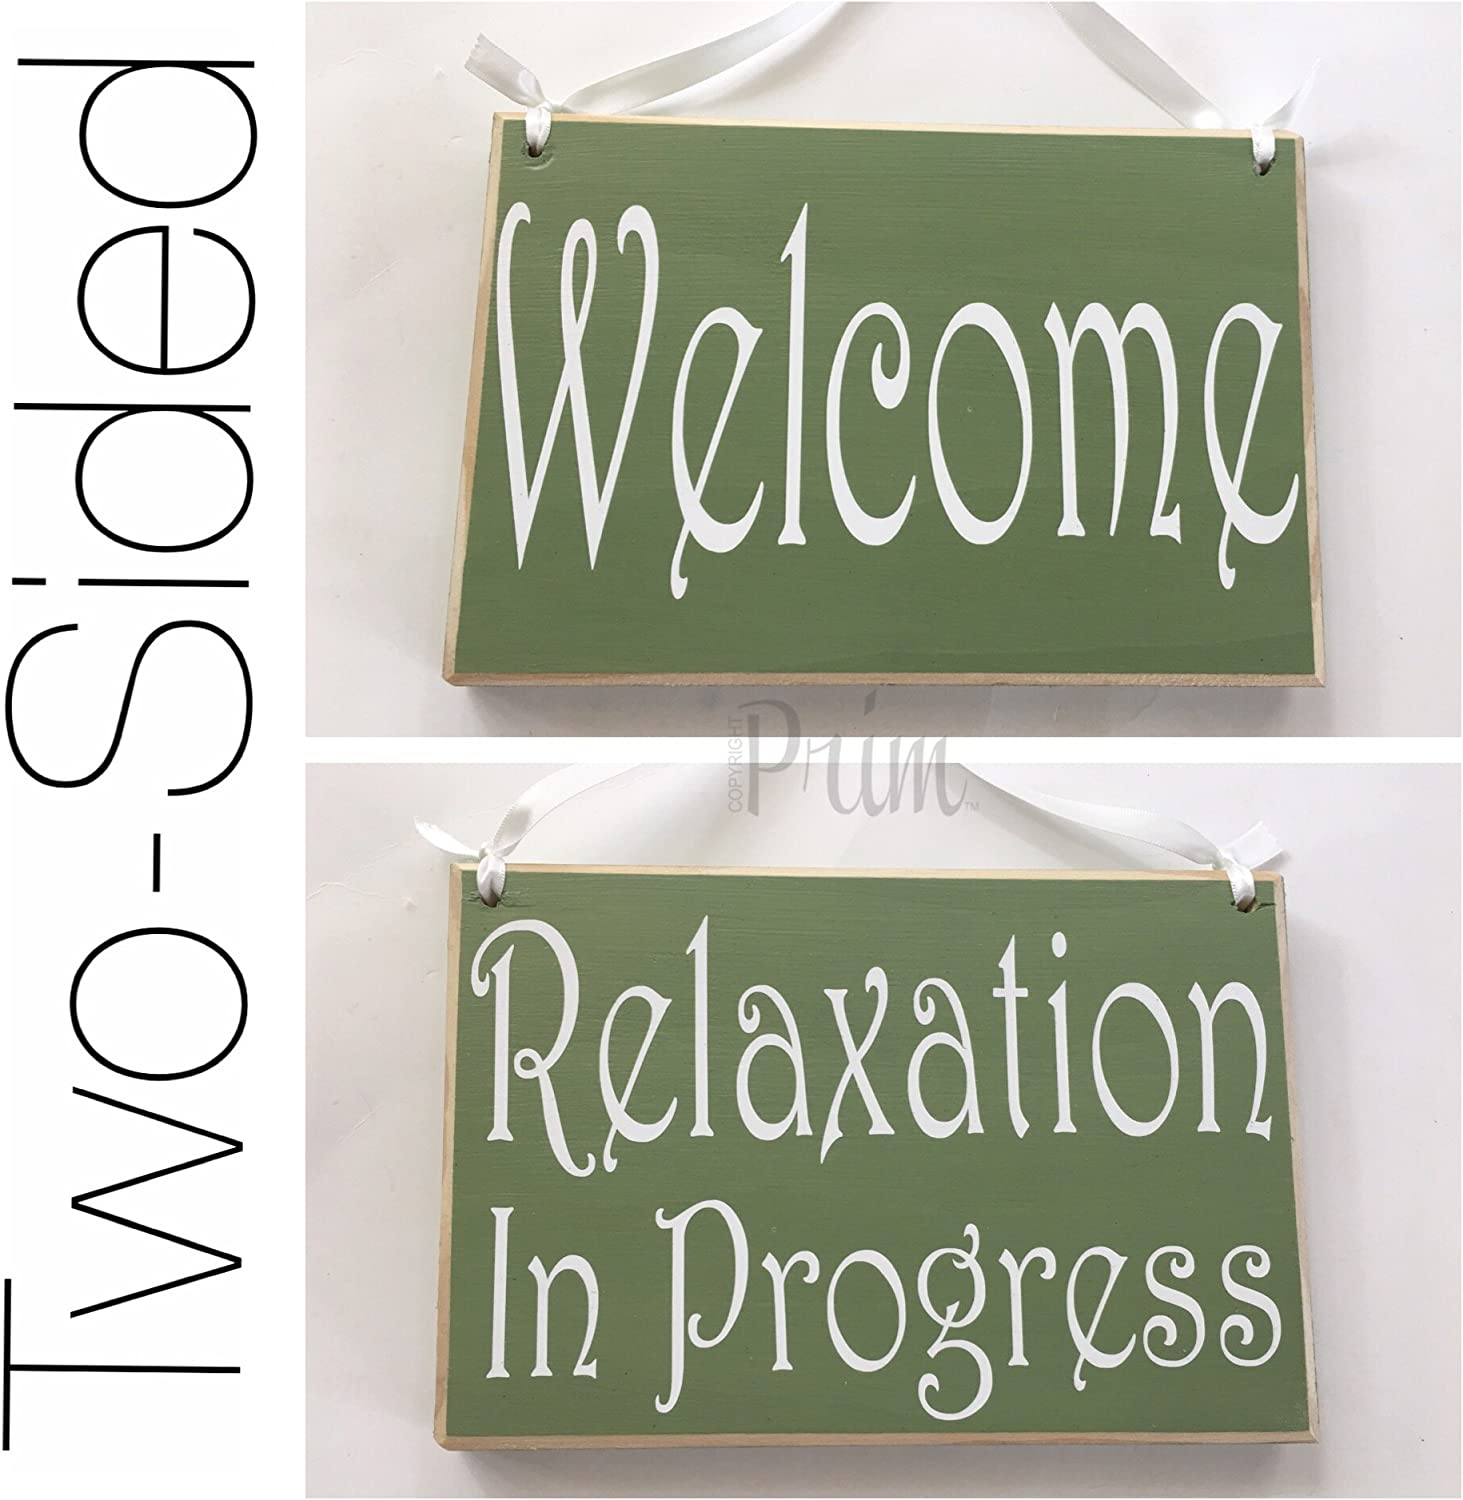 8x6 Relaxation in Progress Welcome Session Do Not Disturb Spa Salon Two Sided Custom Wood Sign Welcome Home Office Door Hanger Plaque